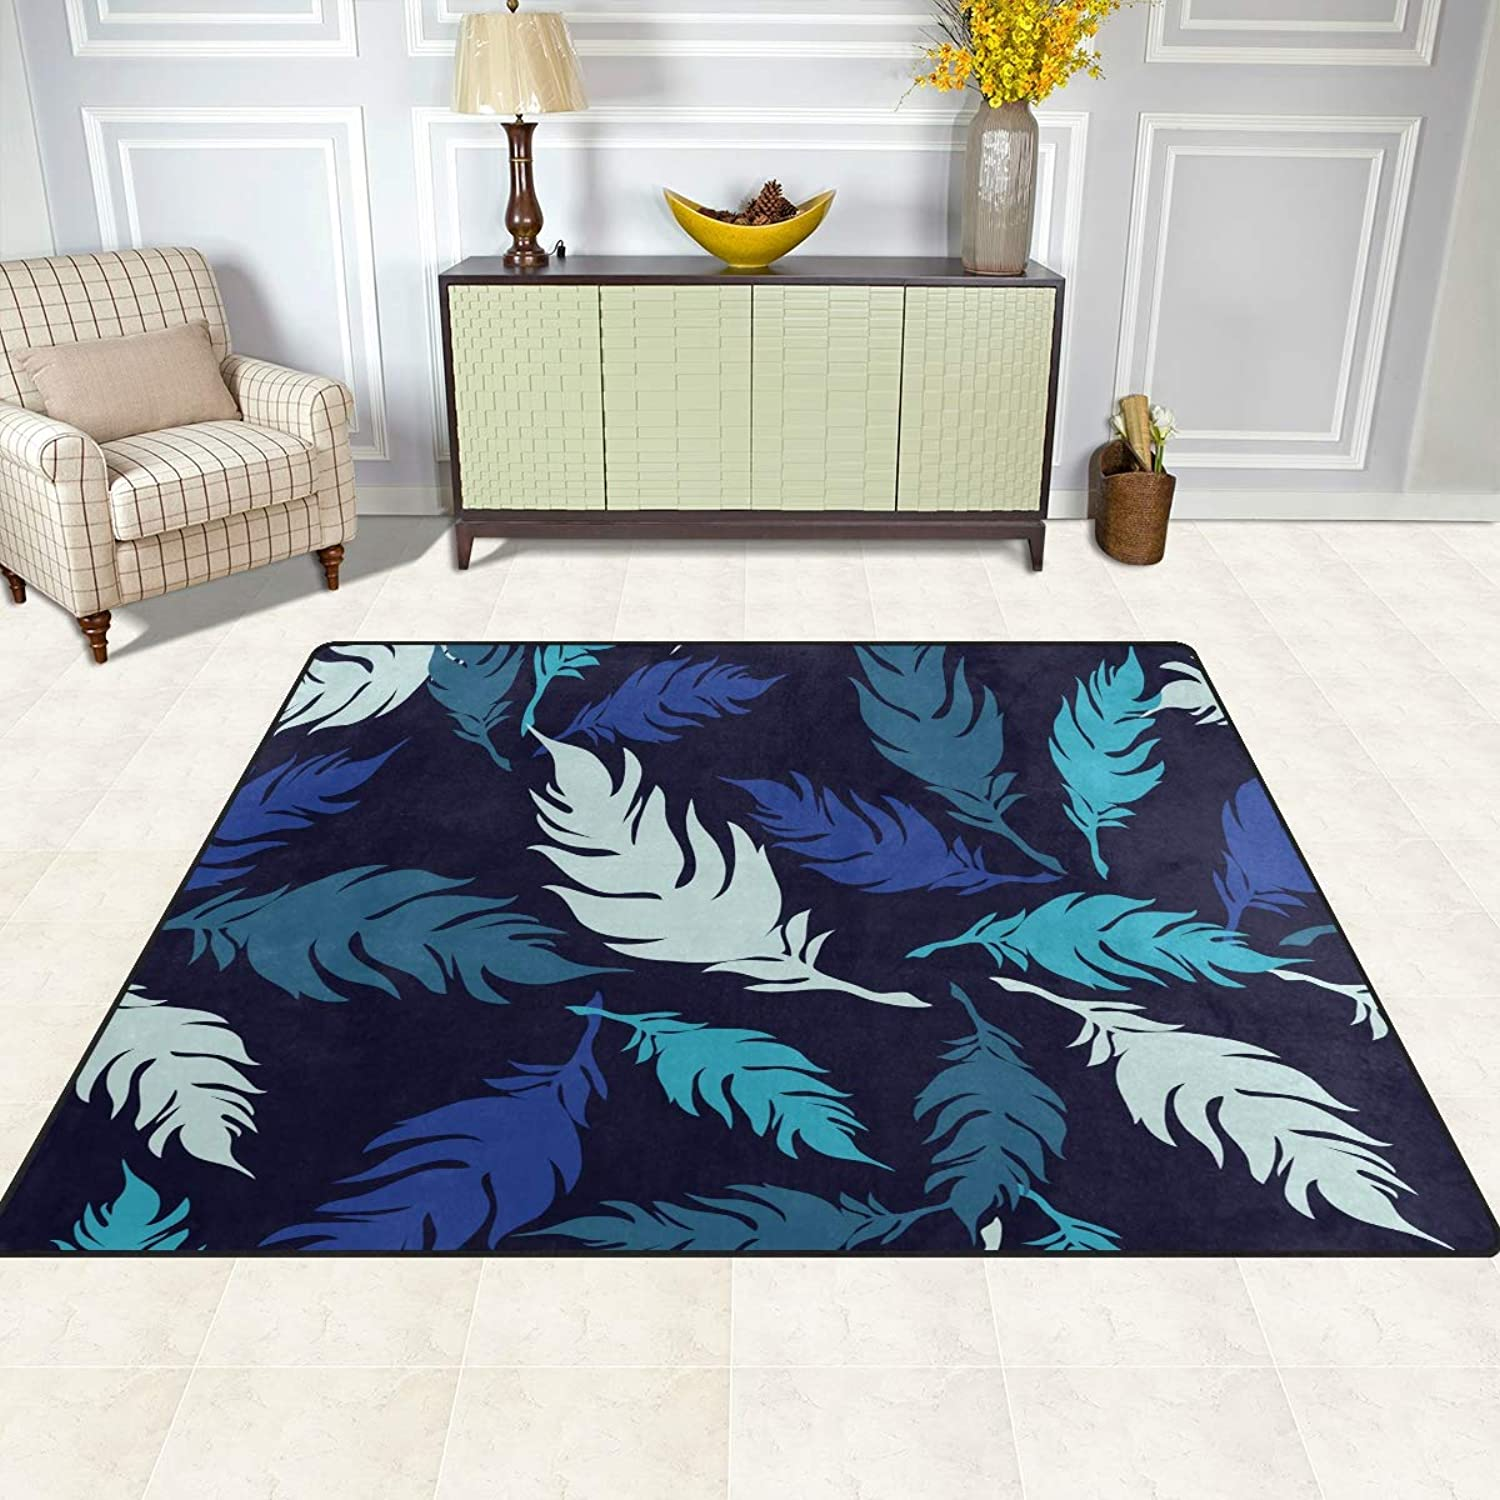 FAJRO Decorative Feathers Pattern Rugs for entryway Doormat Area Rug Multipattern Door Mat shoes Scraper Home Dec Anti-Slip Indoor Outdoor